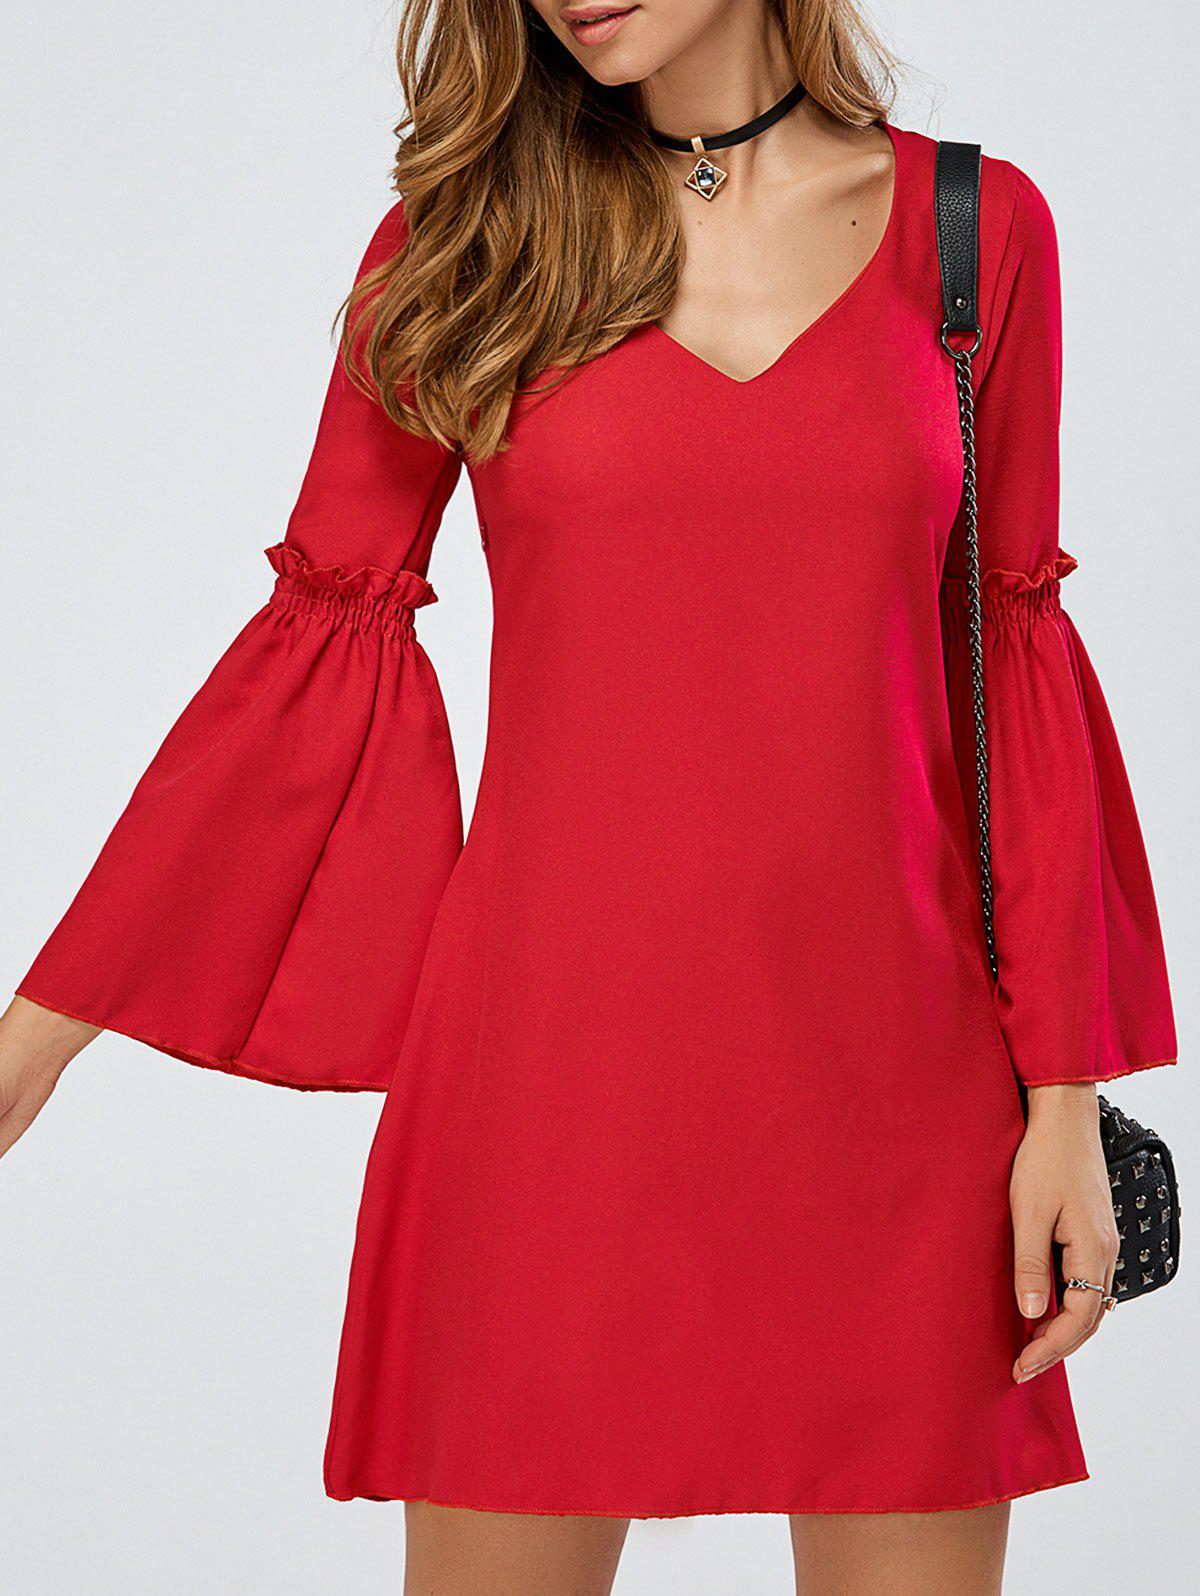 V-Neck Bell Sleeve Ruffle Short A Line Dress - RED S